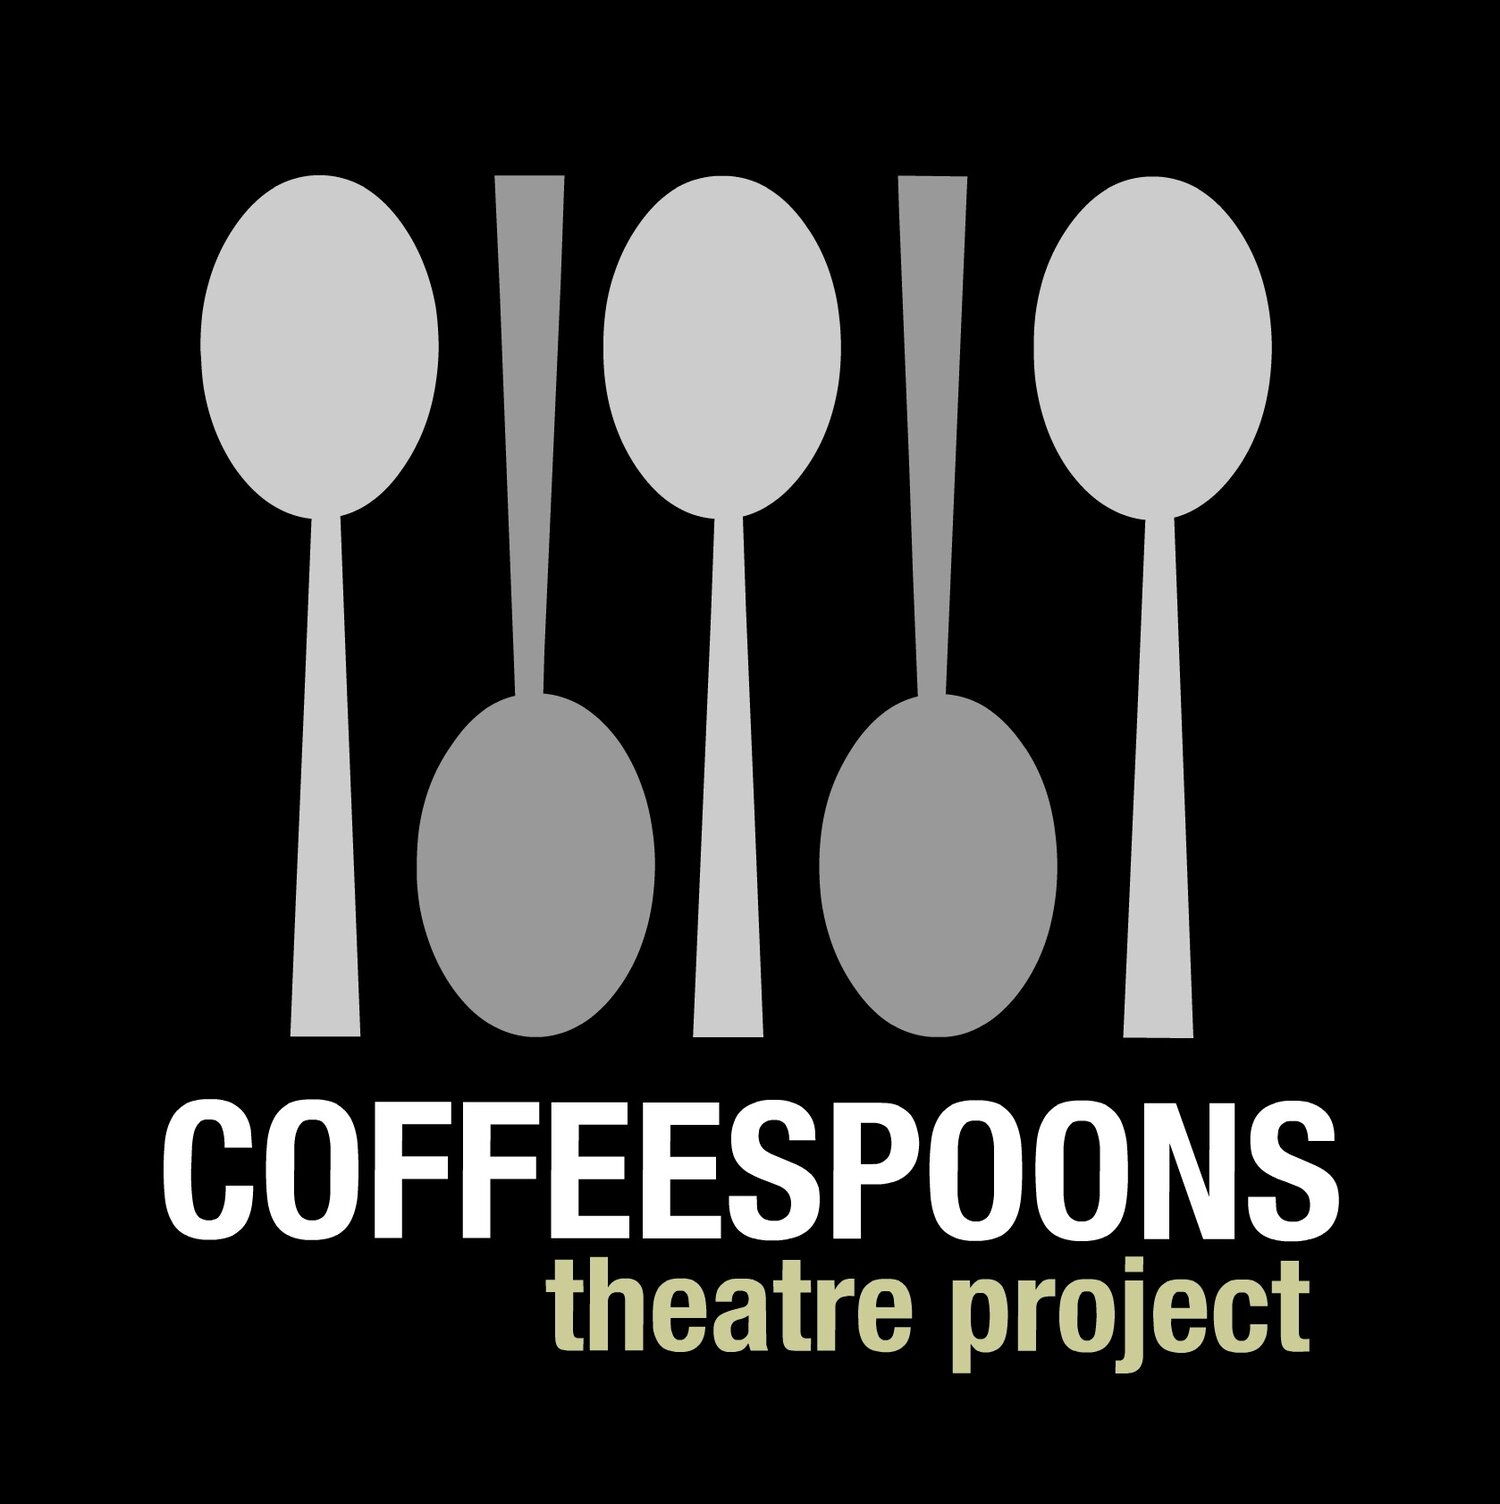 CoffeeSpoons Theatre Project